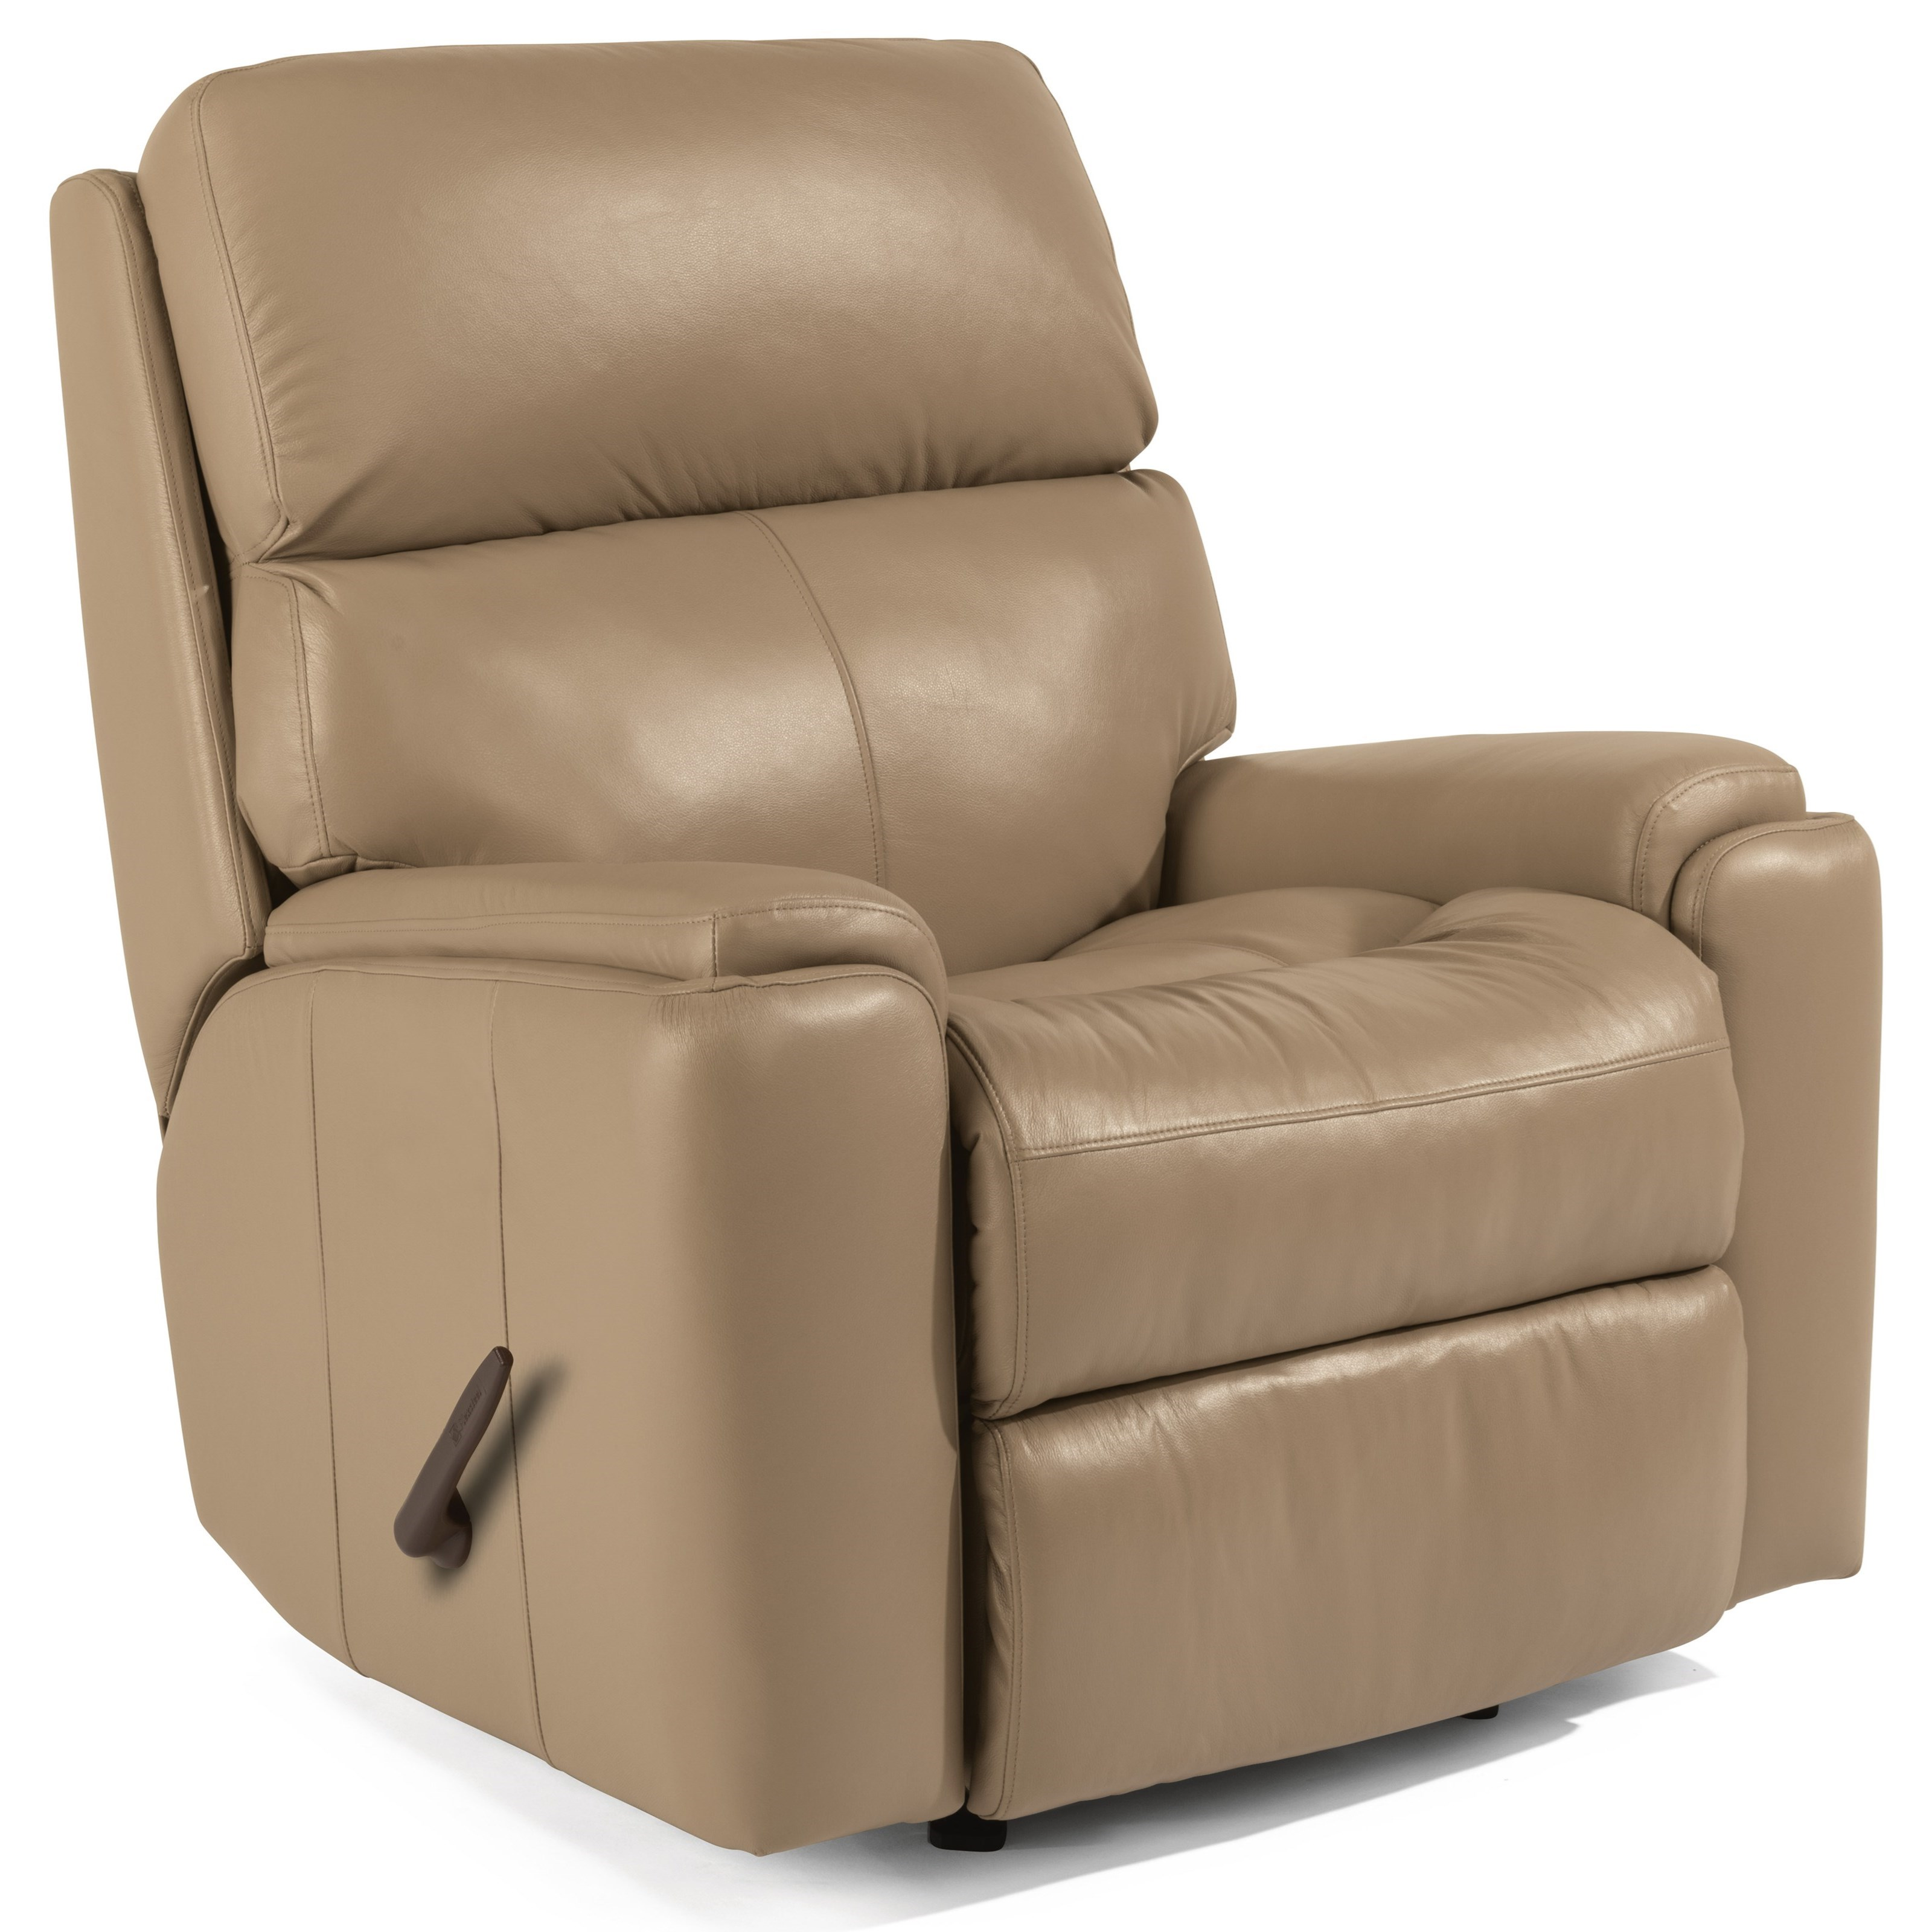 Rio Recliner by Flexsteel at Rooms and Rest